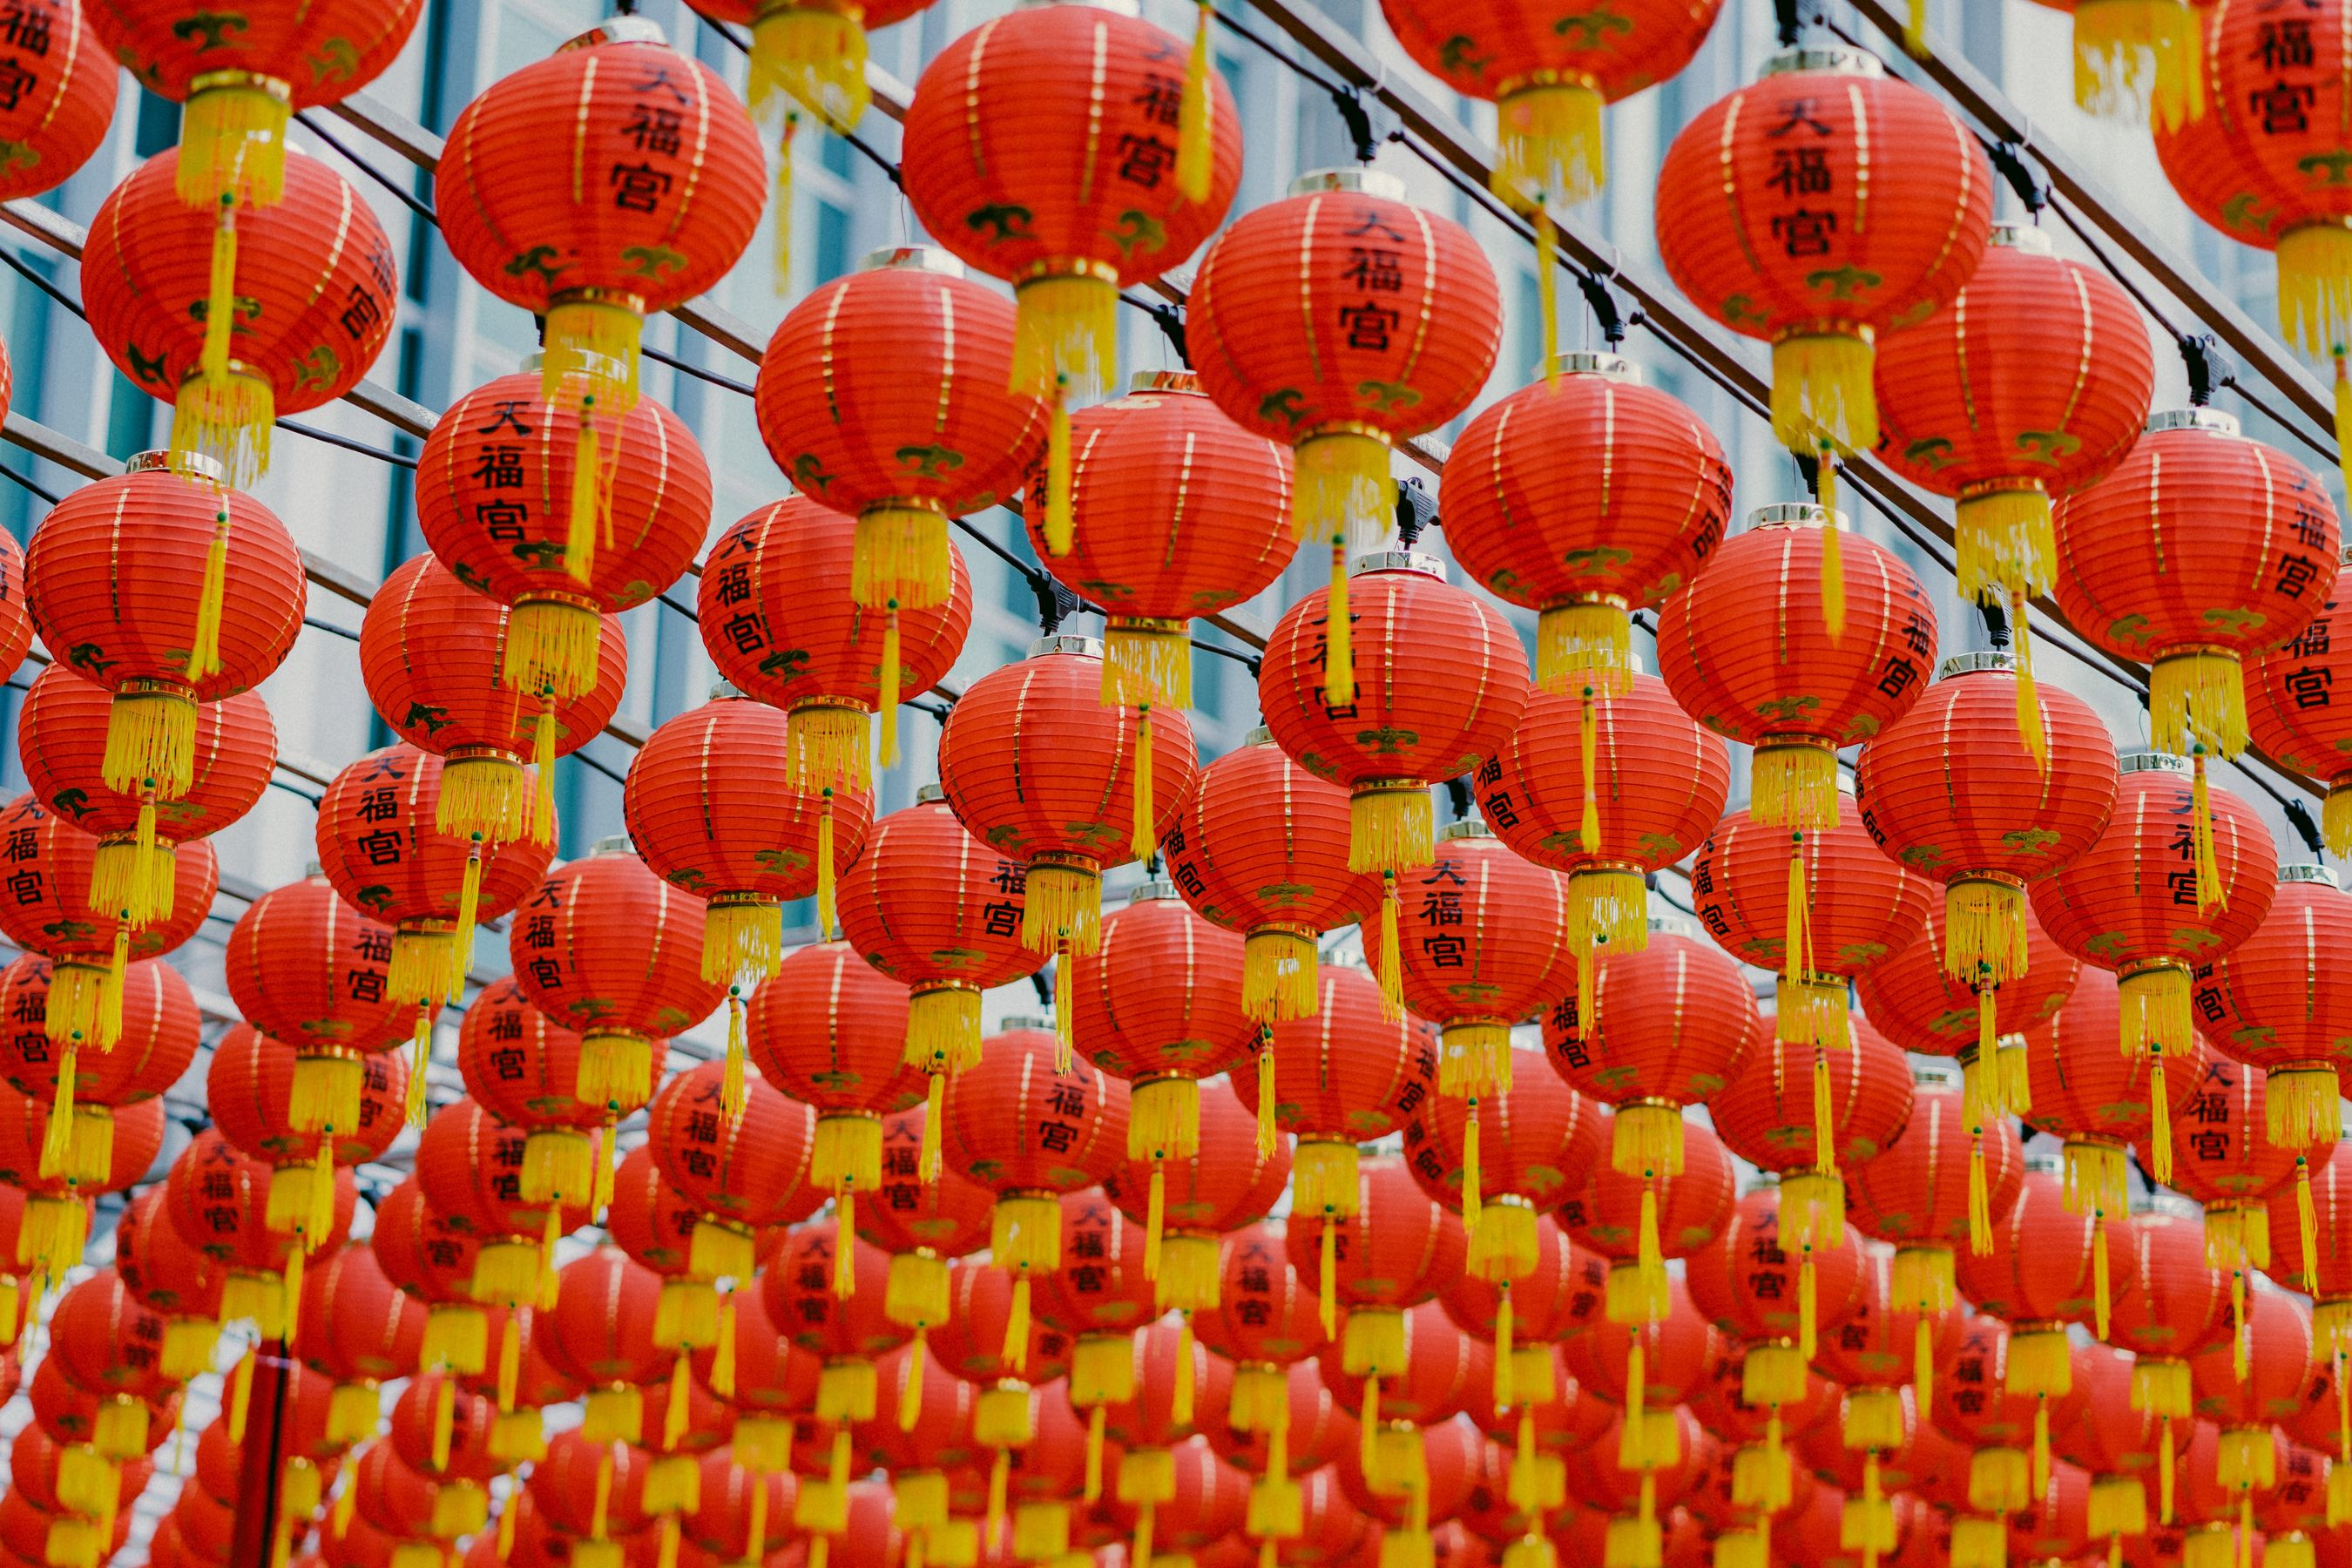 lucky red lanterns in celebration of lunar new year